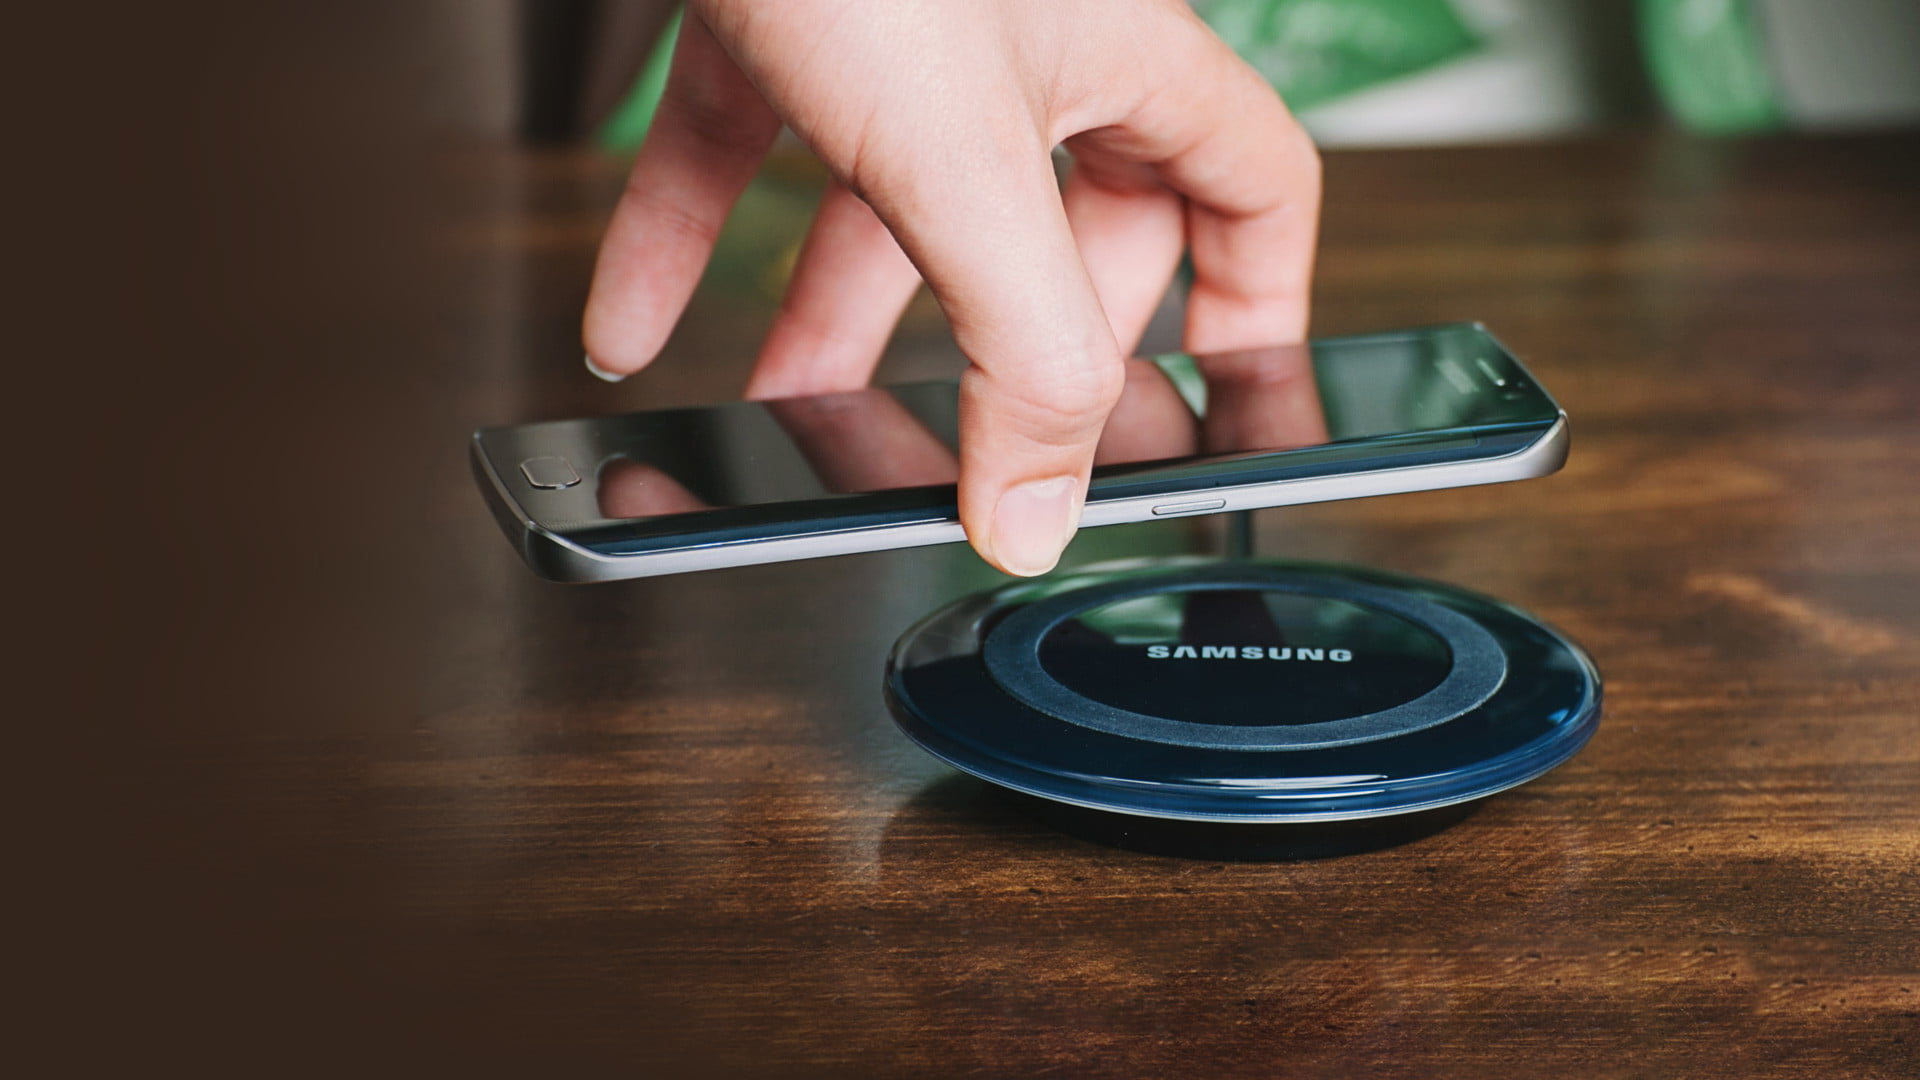 Wireless Battery Charger Does Wireless Charging Degrade Your Battery Faster We Asked An